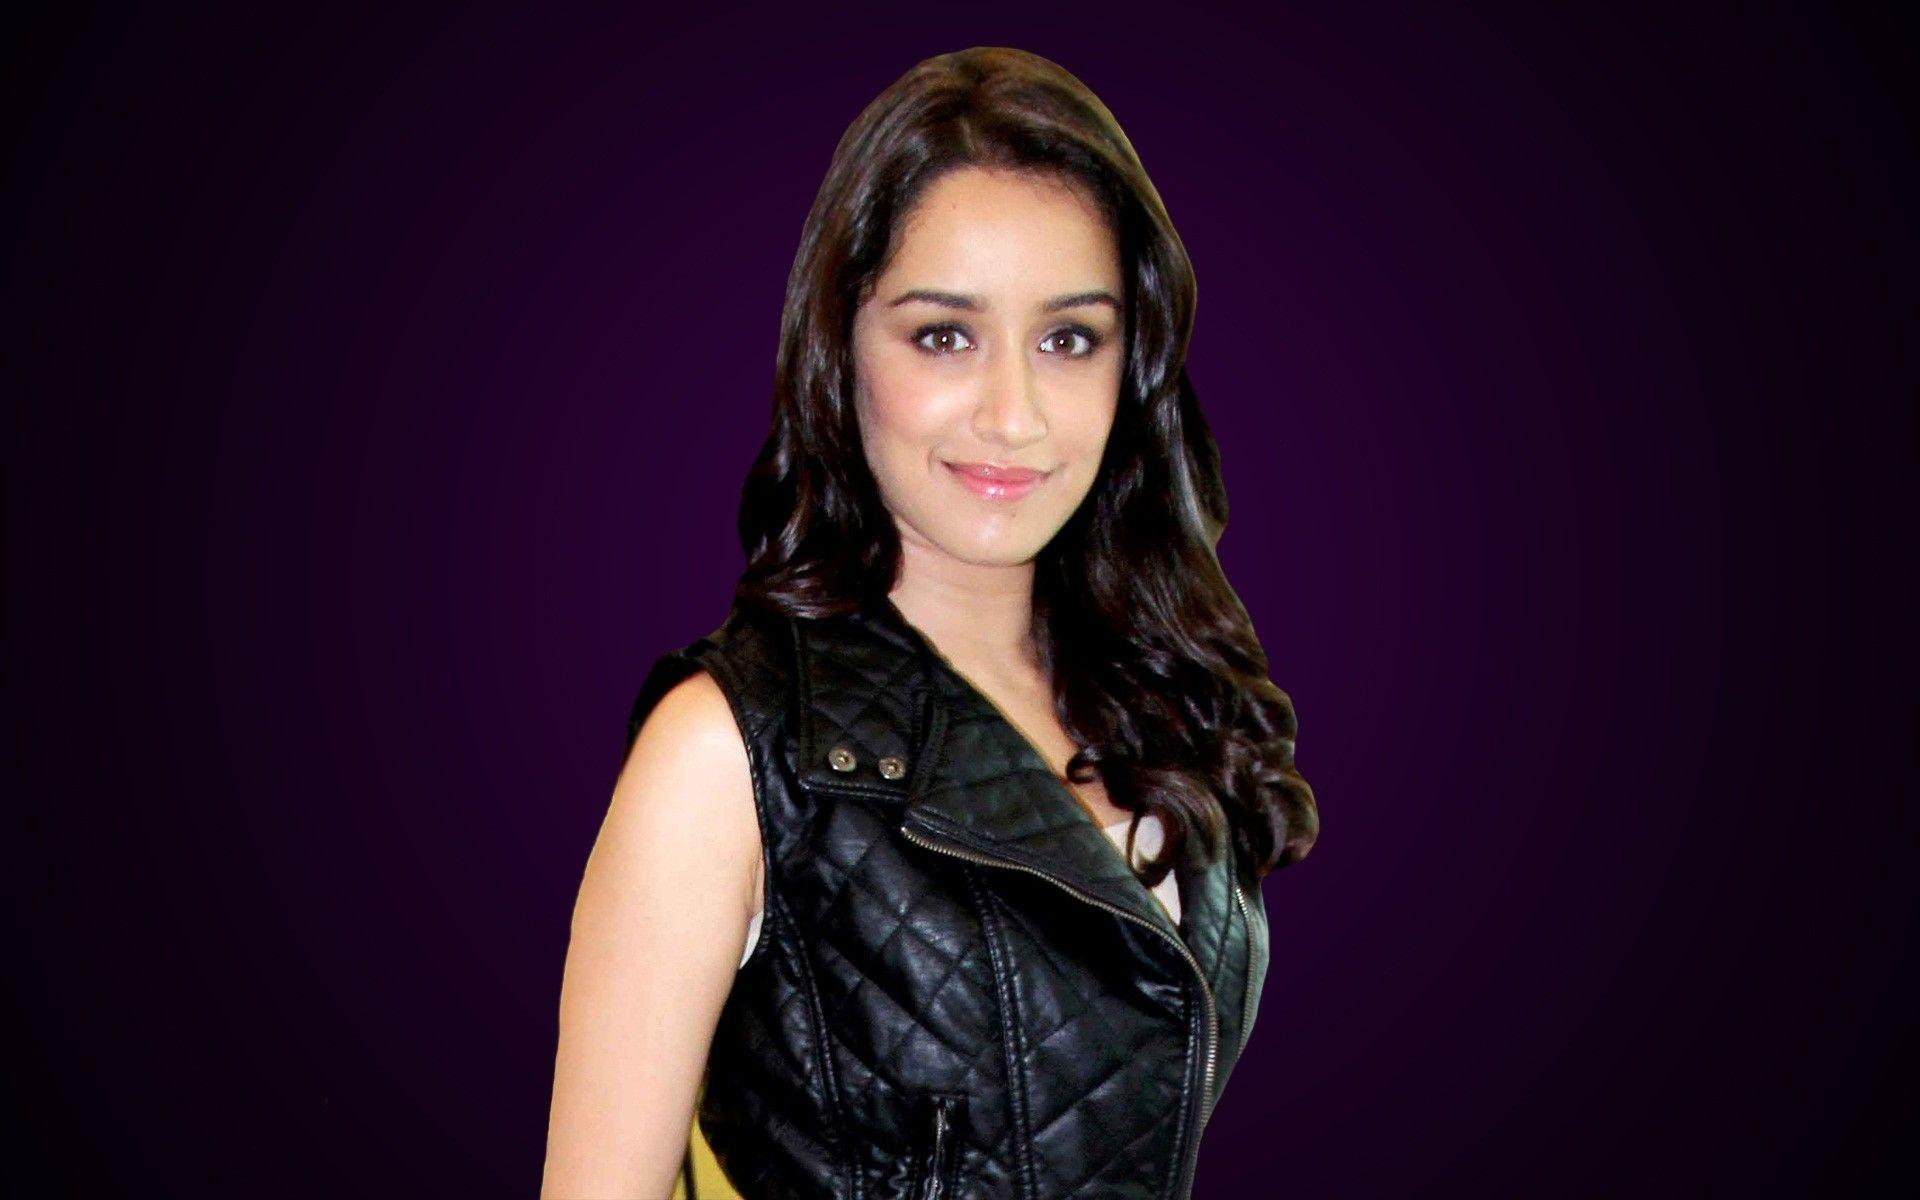 shraddha_kapoor_wallpaper_97338017